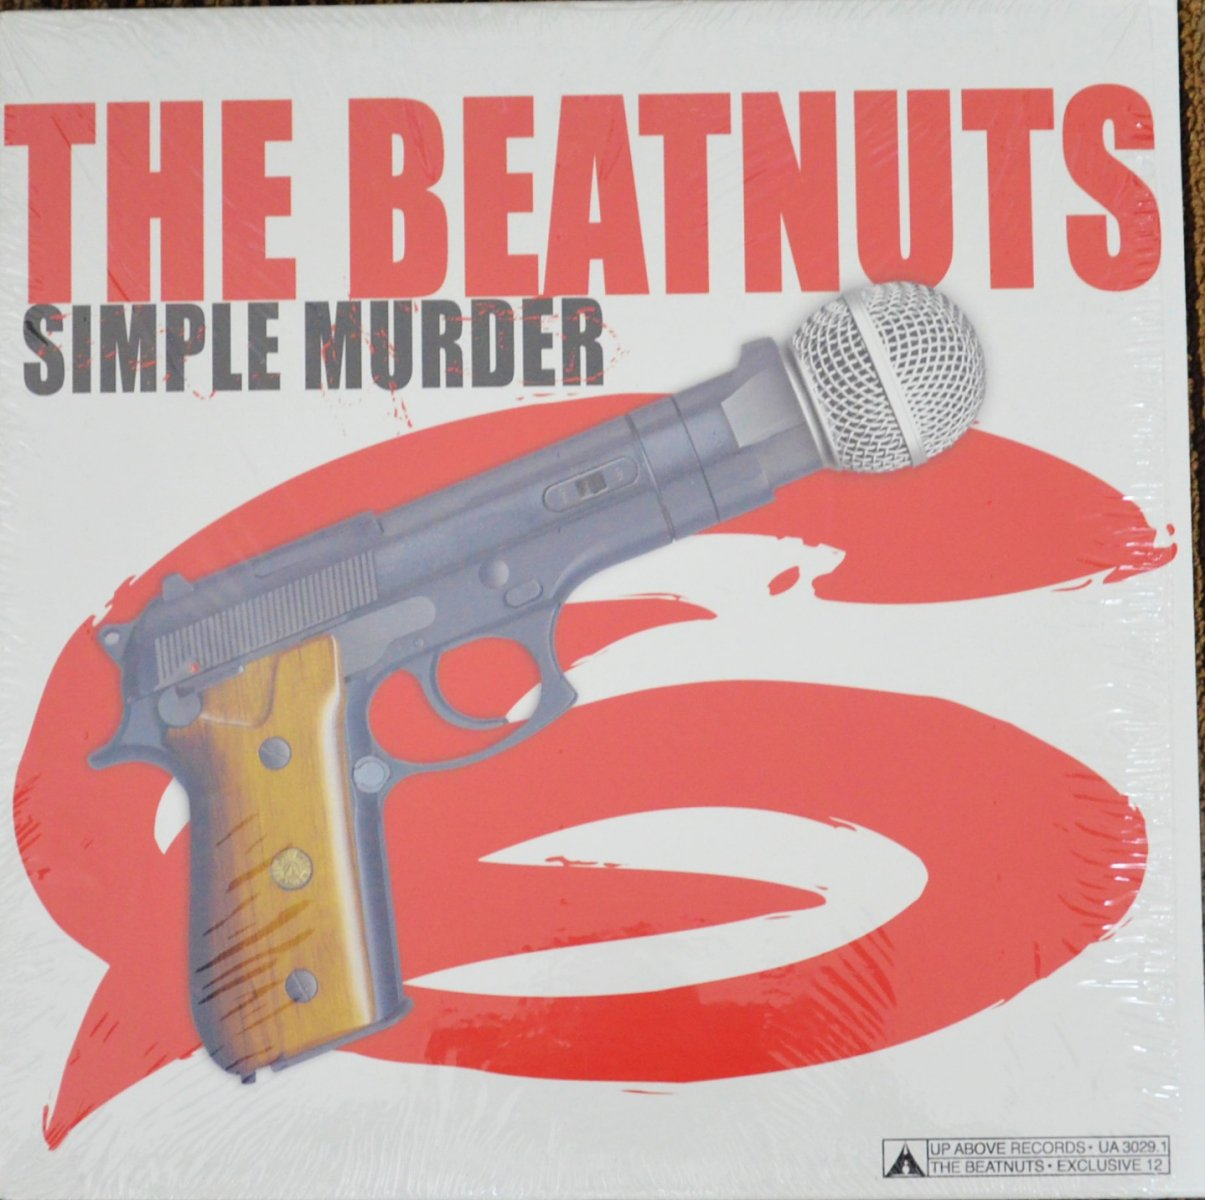 THE BEATNUTS ‎/ SIMPLE MURDER (12